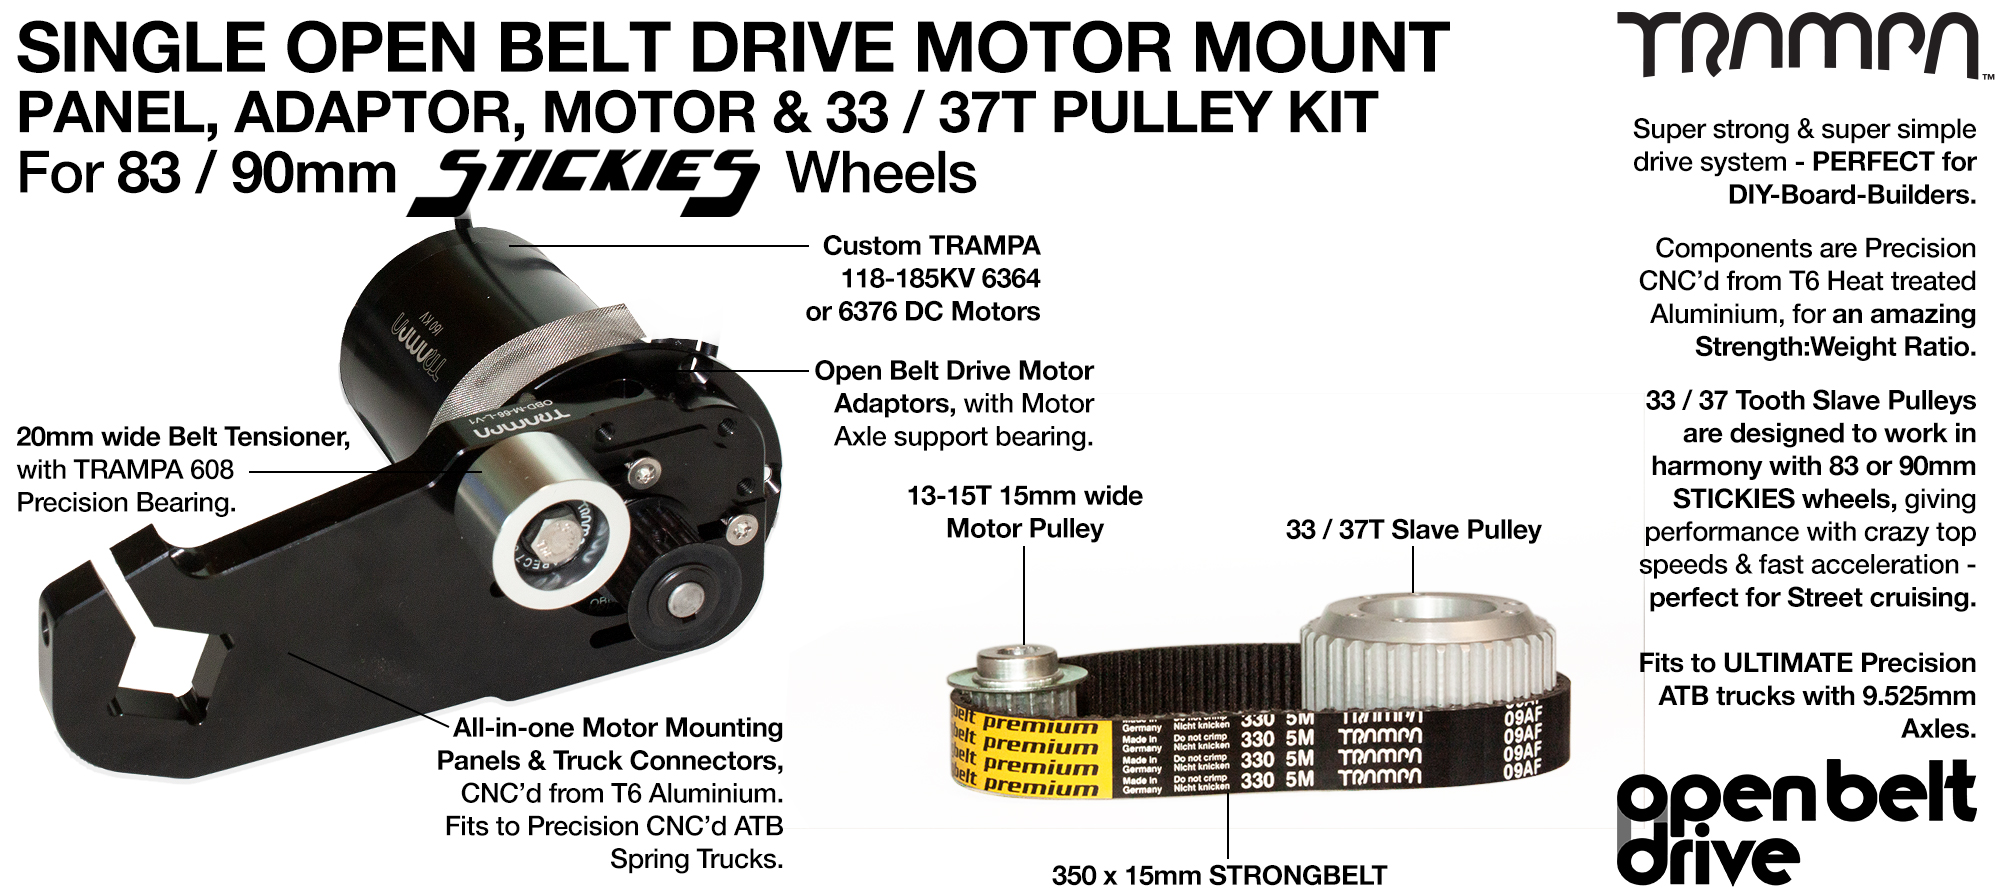 66T OBD Motor Mount with 33 / 37T Pulley kit & custom Motor - SINGLE